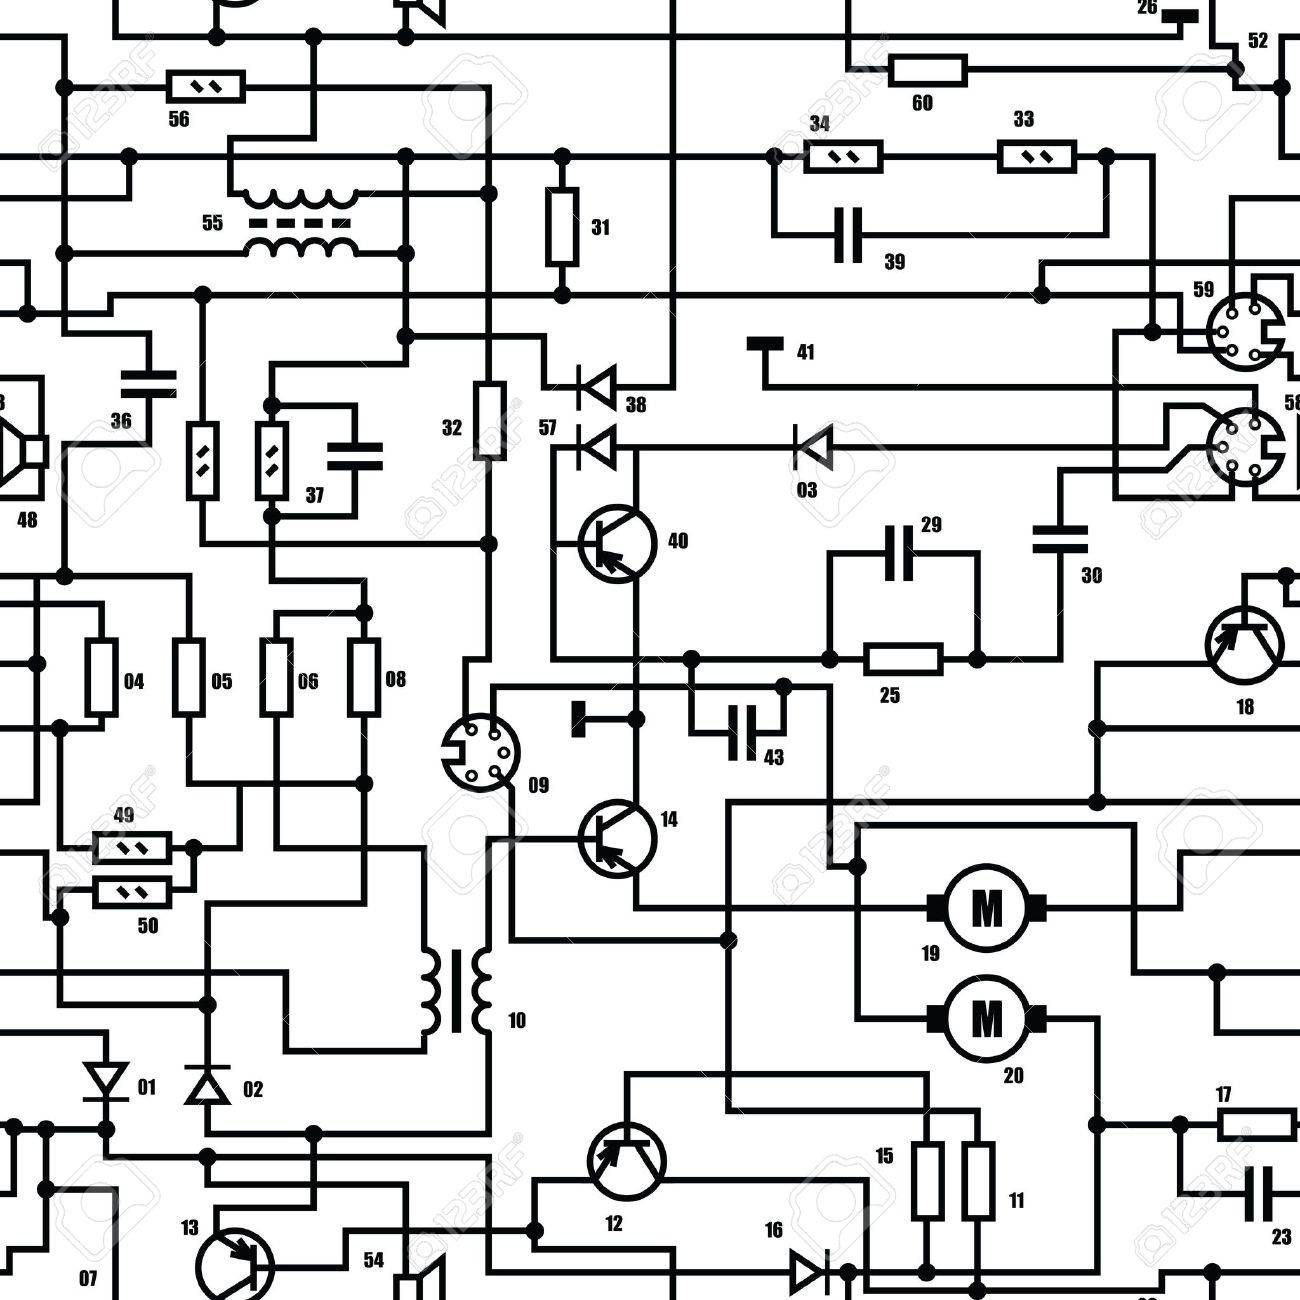 Electronic Black And White Diagram - Technical Schematic Seamless ...